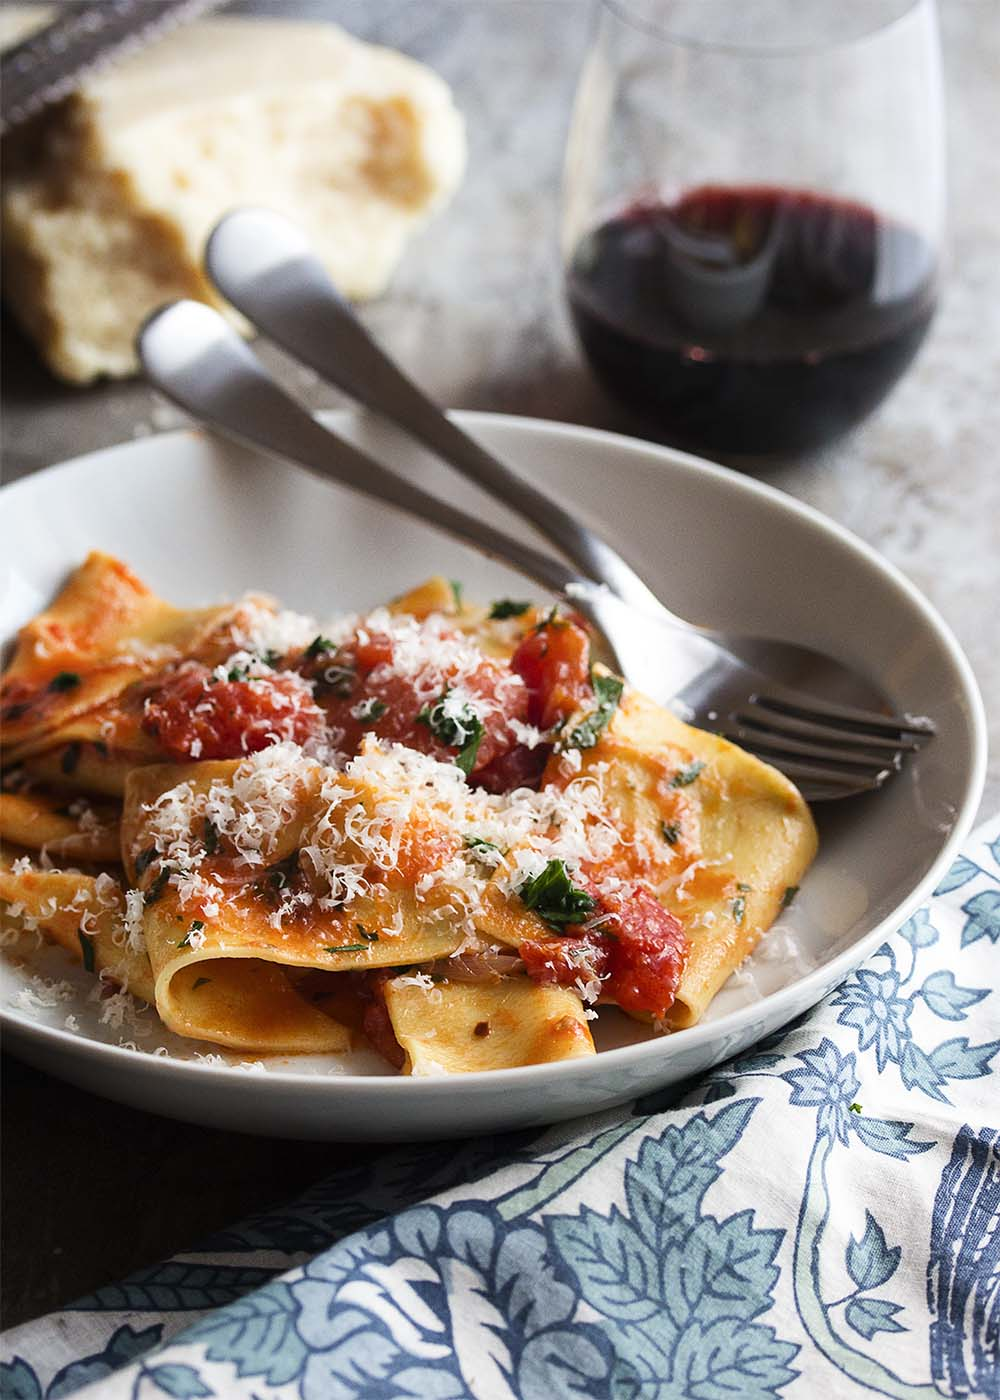 This 20 minute Italian arrabbiata sauce full of chunky tomatoes and red peppers is a simple recipe great for a quick, weeknight meal. | justalittlebitofbacon.com